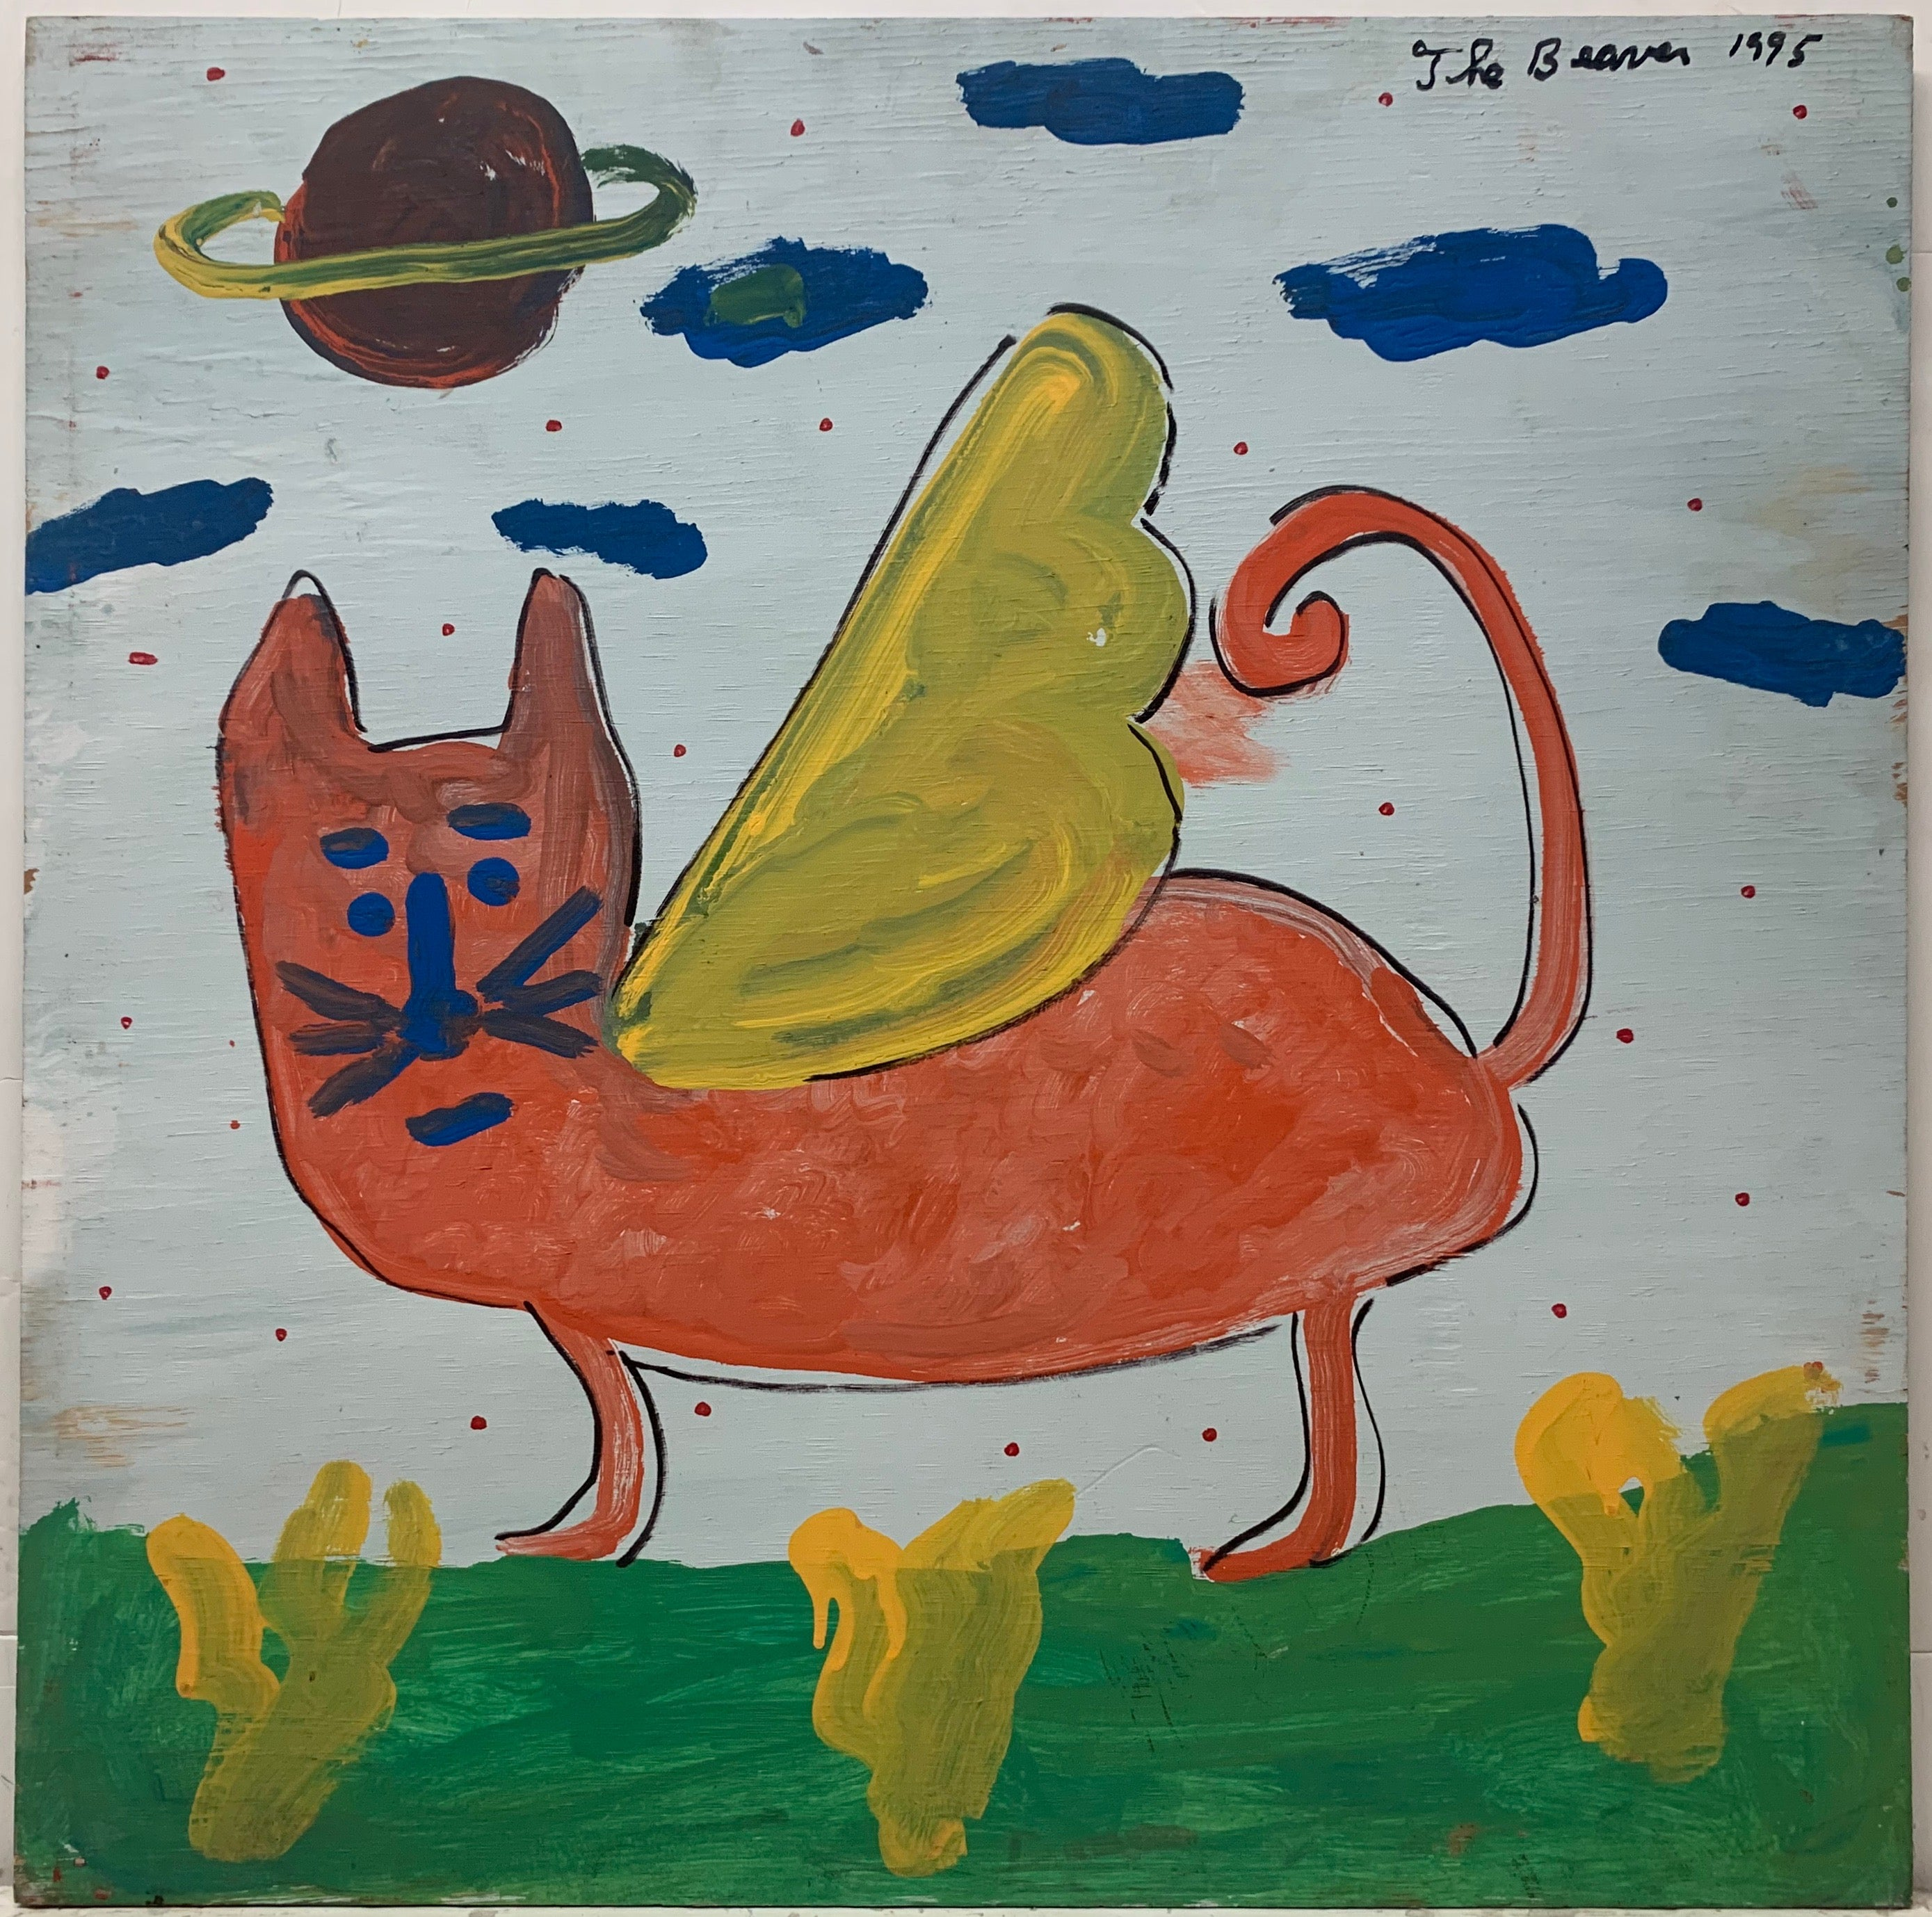 A painting by The Beaver of an orange cat with a blue face and yellow wings. Saturn is visible in the sky.